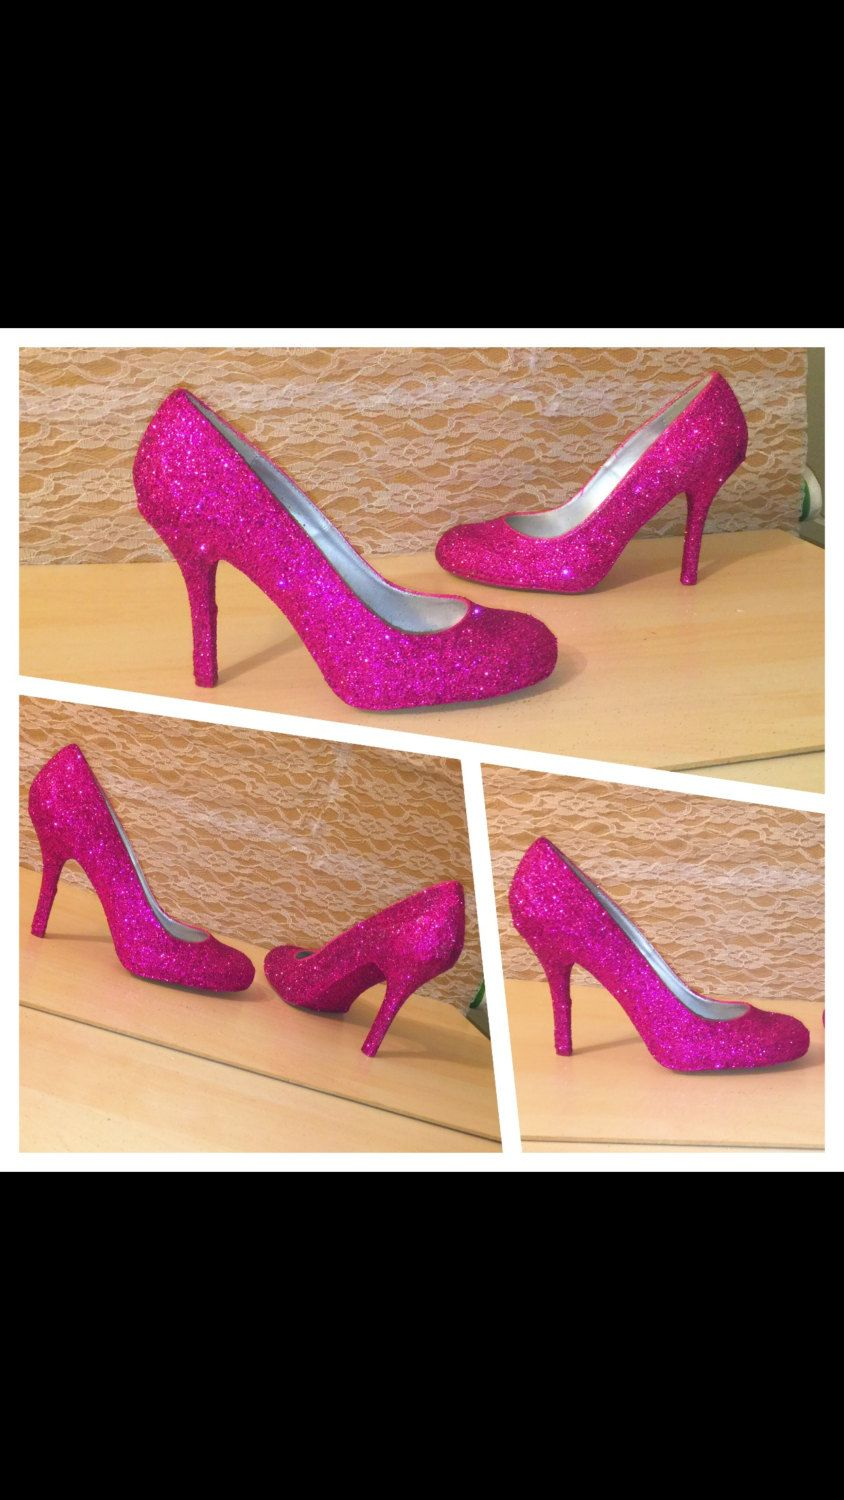 Womens Sparkly Glitter High Or Low Pumps Closed P Toe Heels Shoes Fuschia Hot Pink